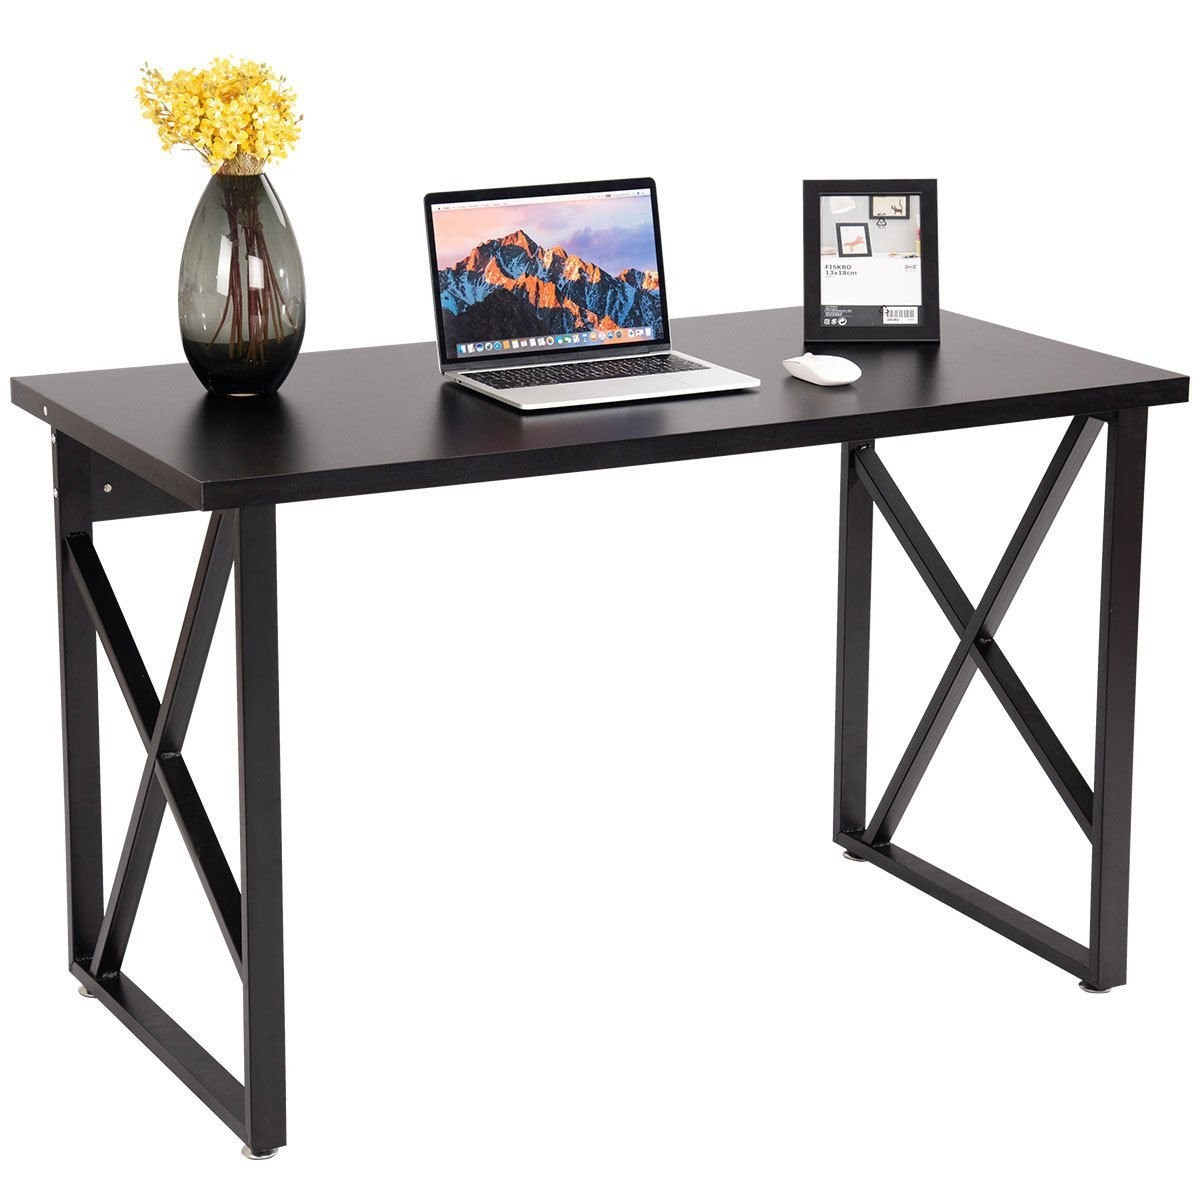 CHEFJOY Computer Desk PC Laptop Table Wood Workstation Study Home Office Furniture (Black and Gray)